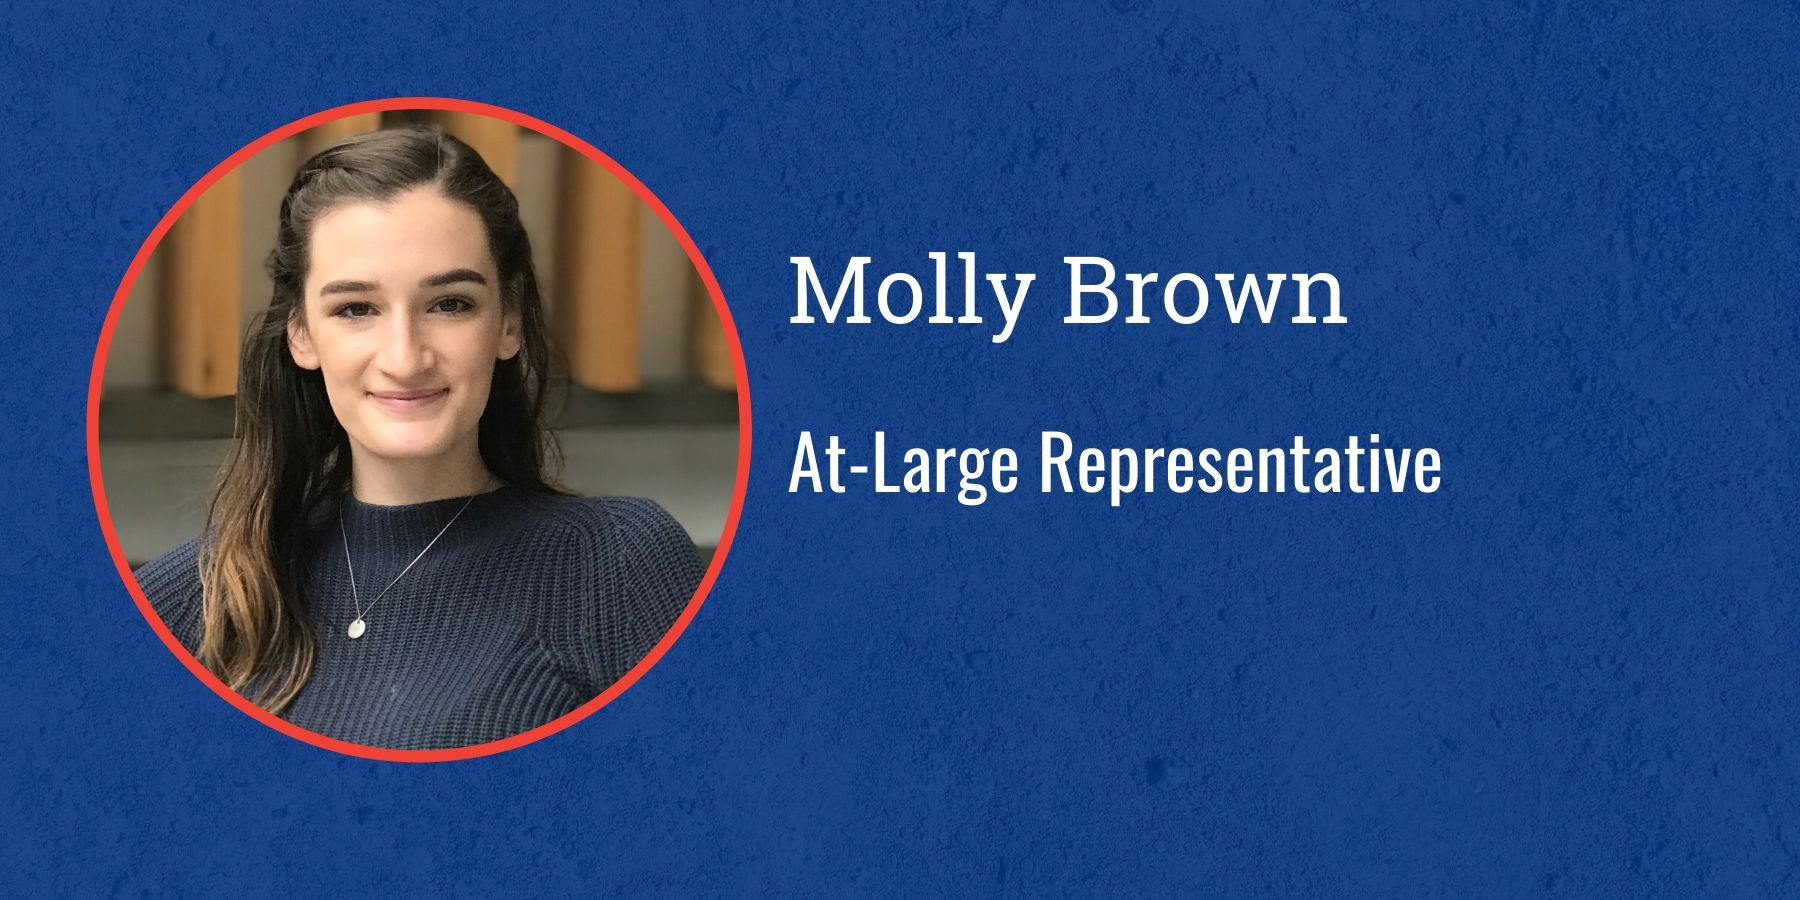 Photo of Molly Brown and text At-Large Representative